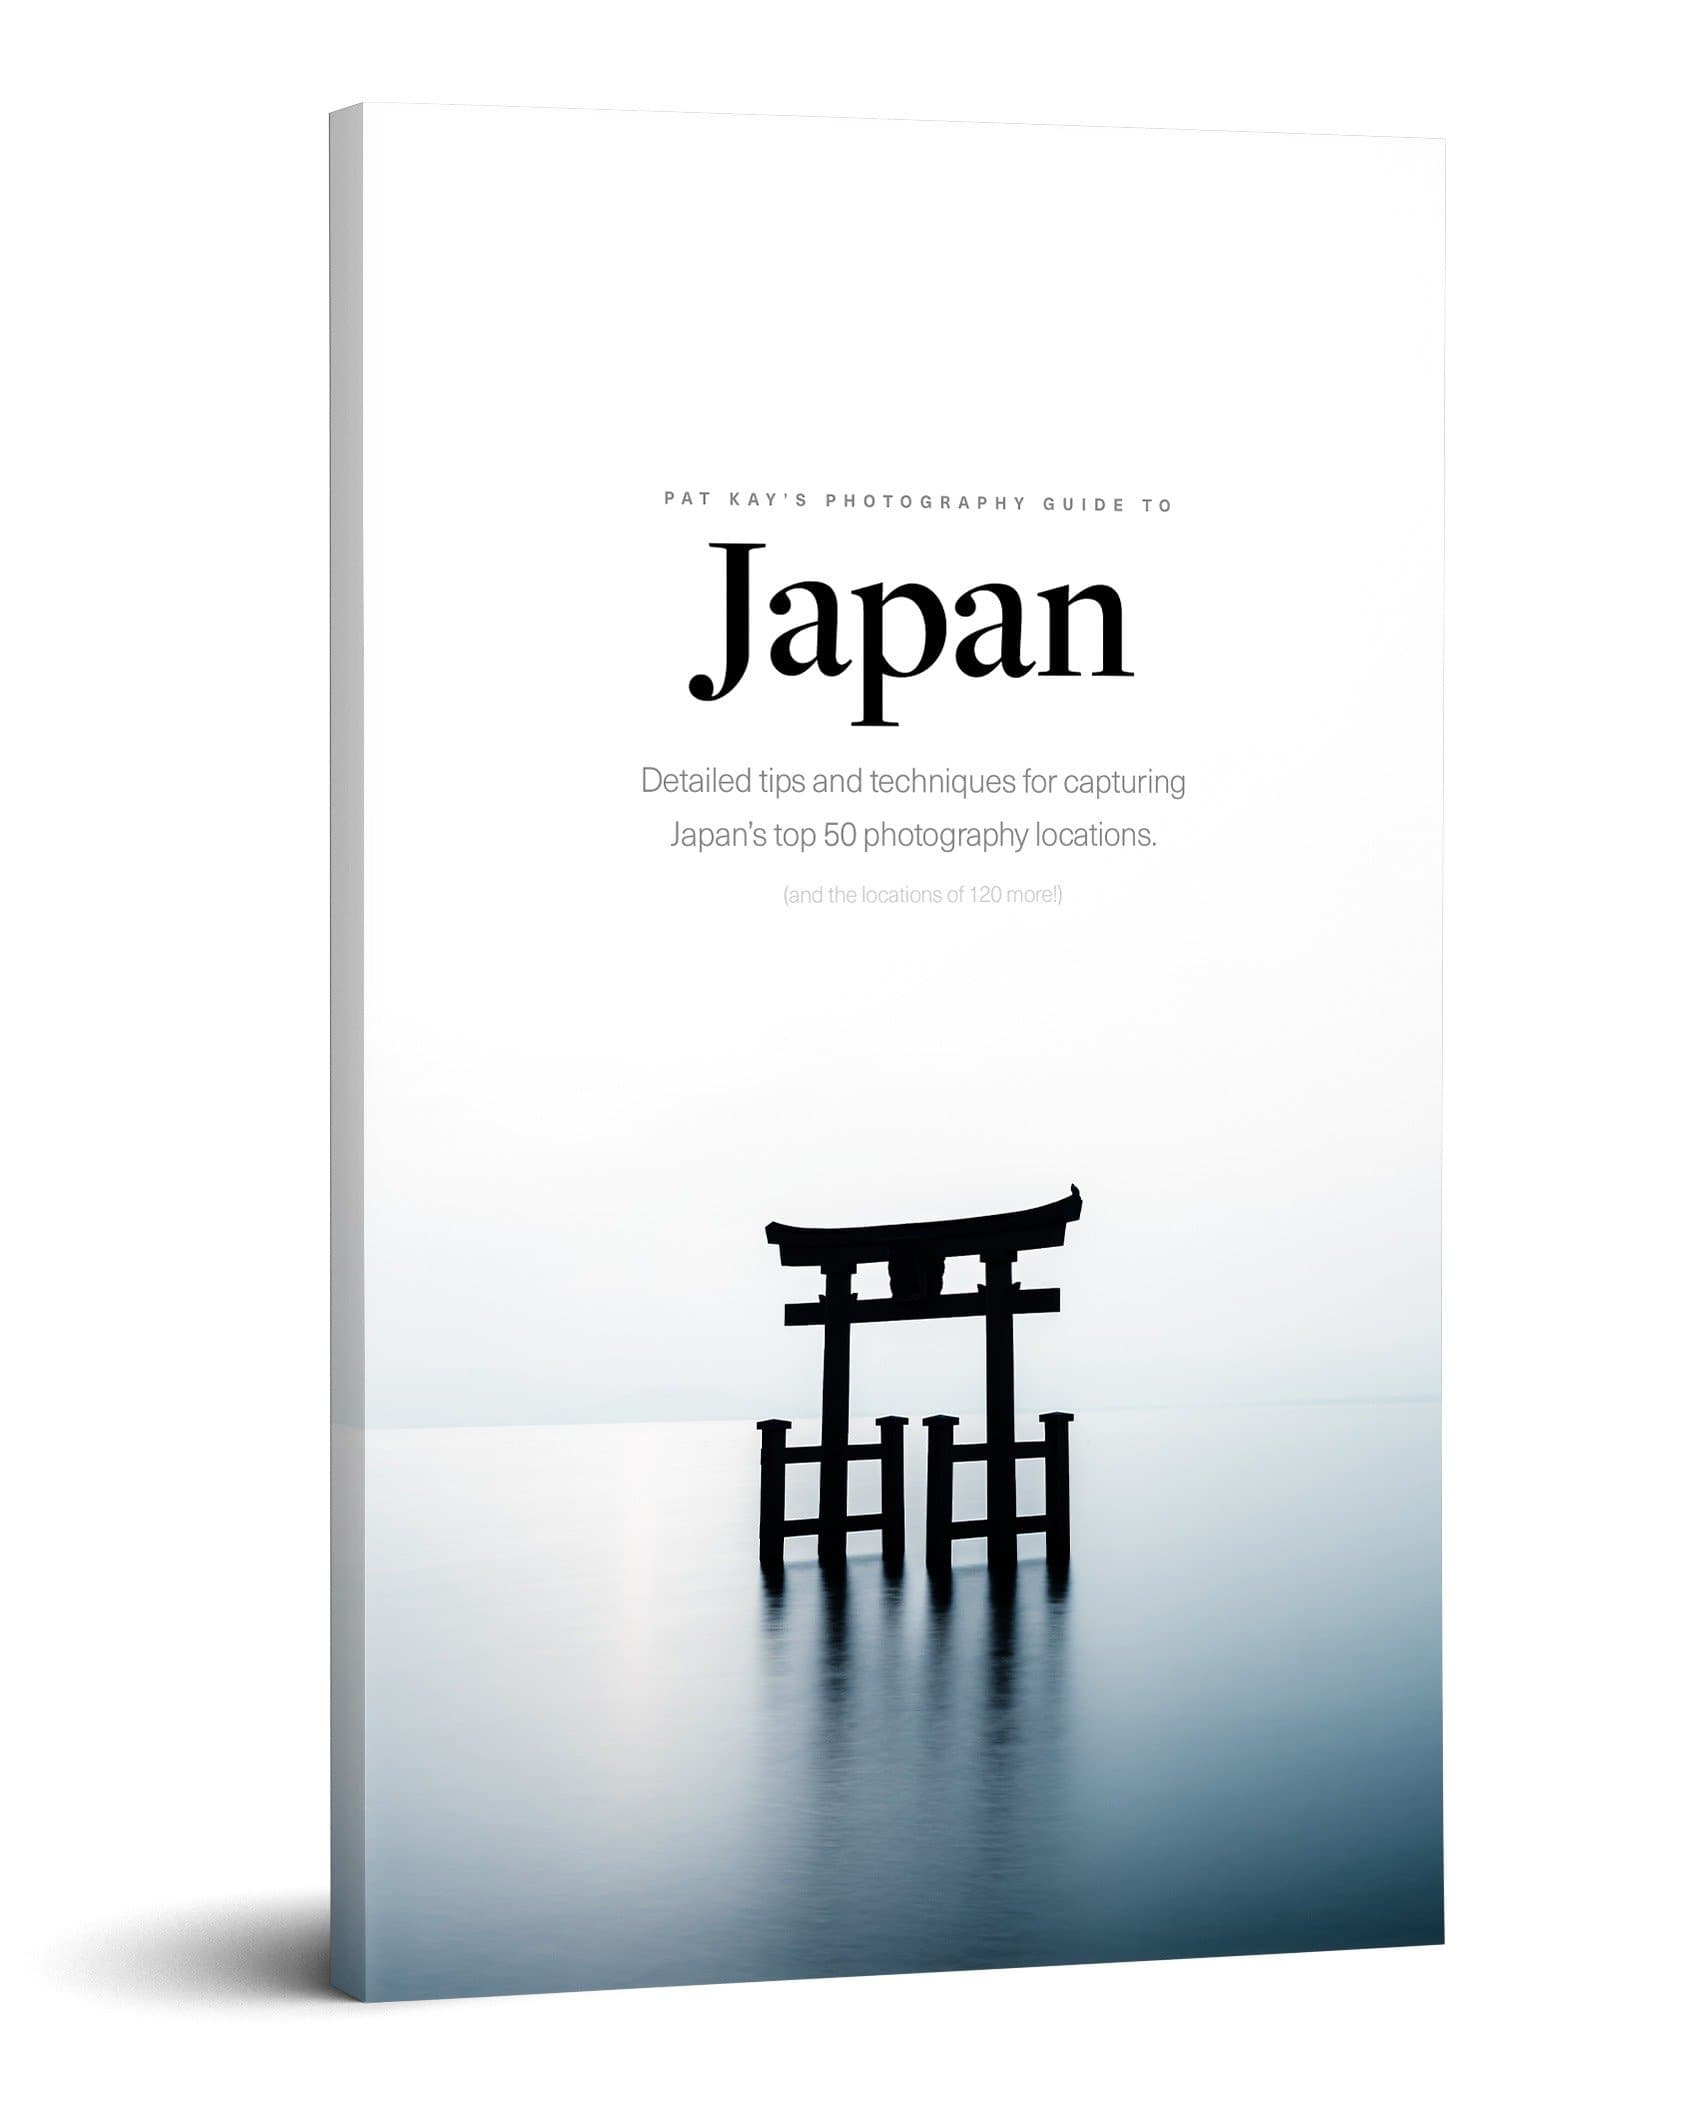 Photography Guide to Japan - Pat Kay